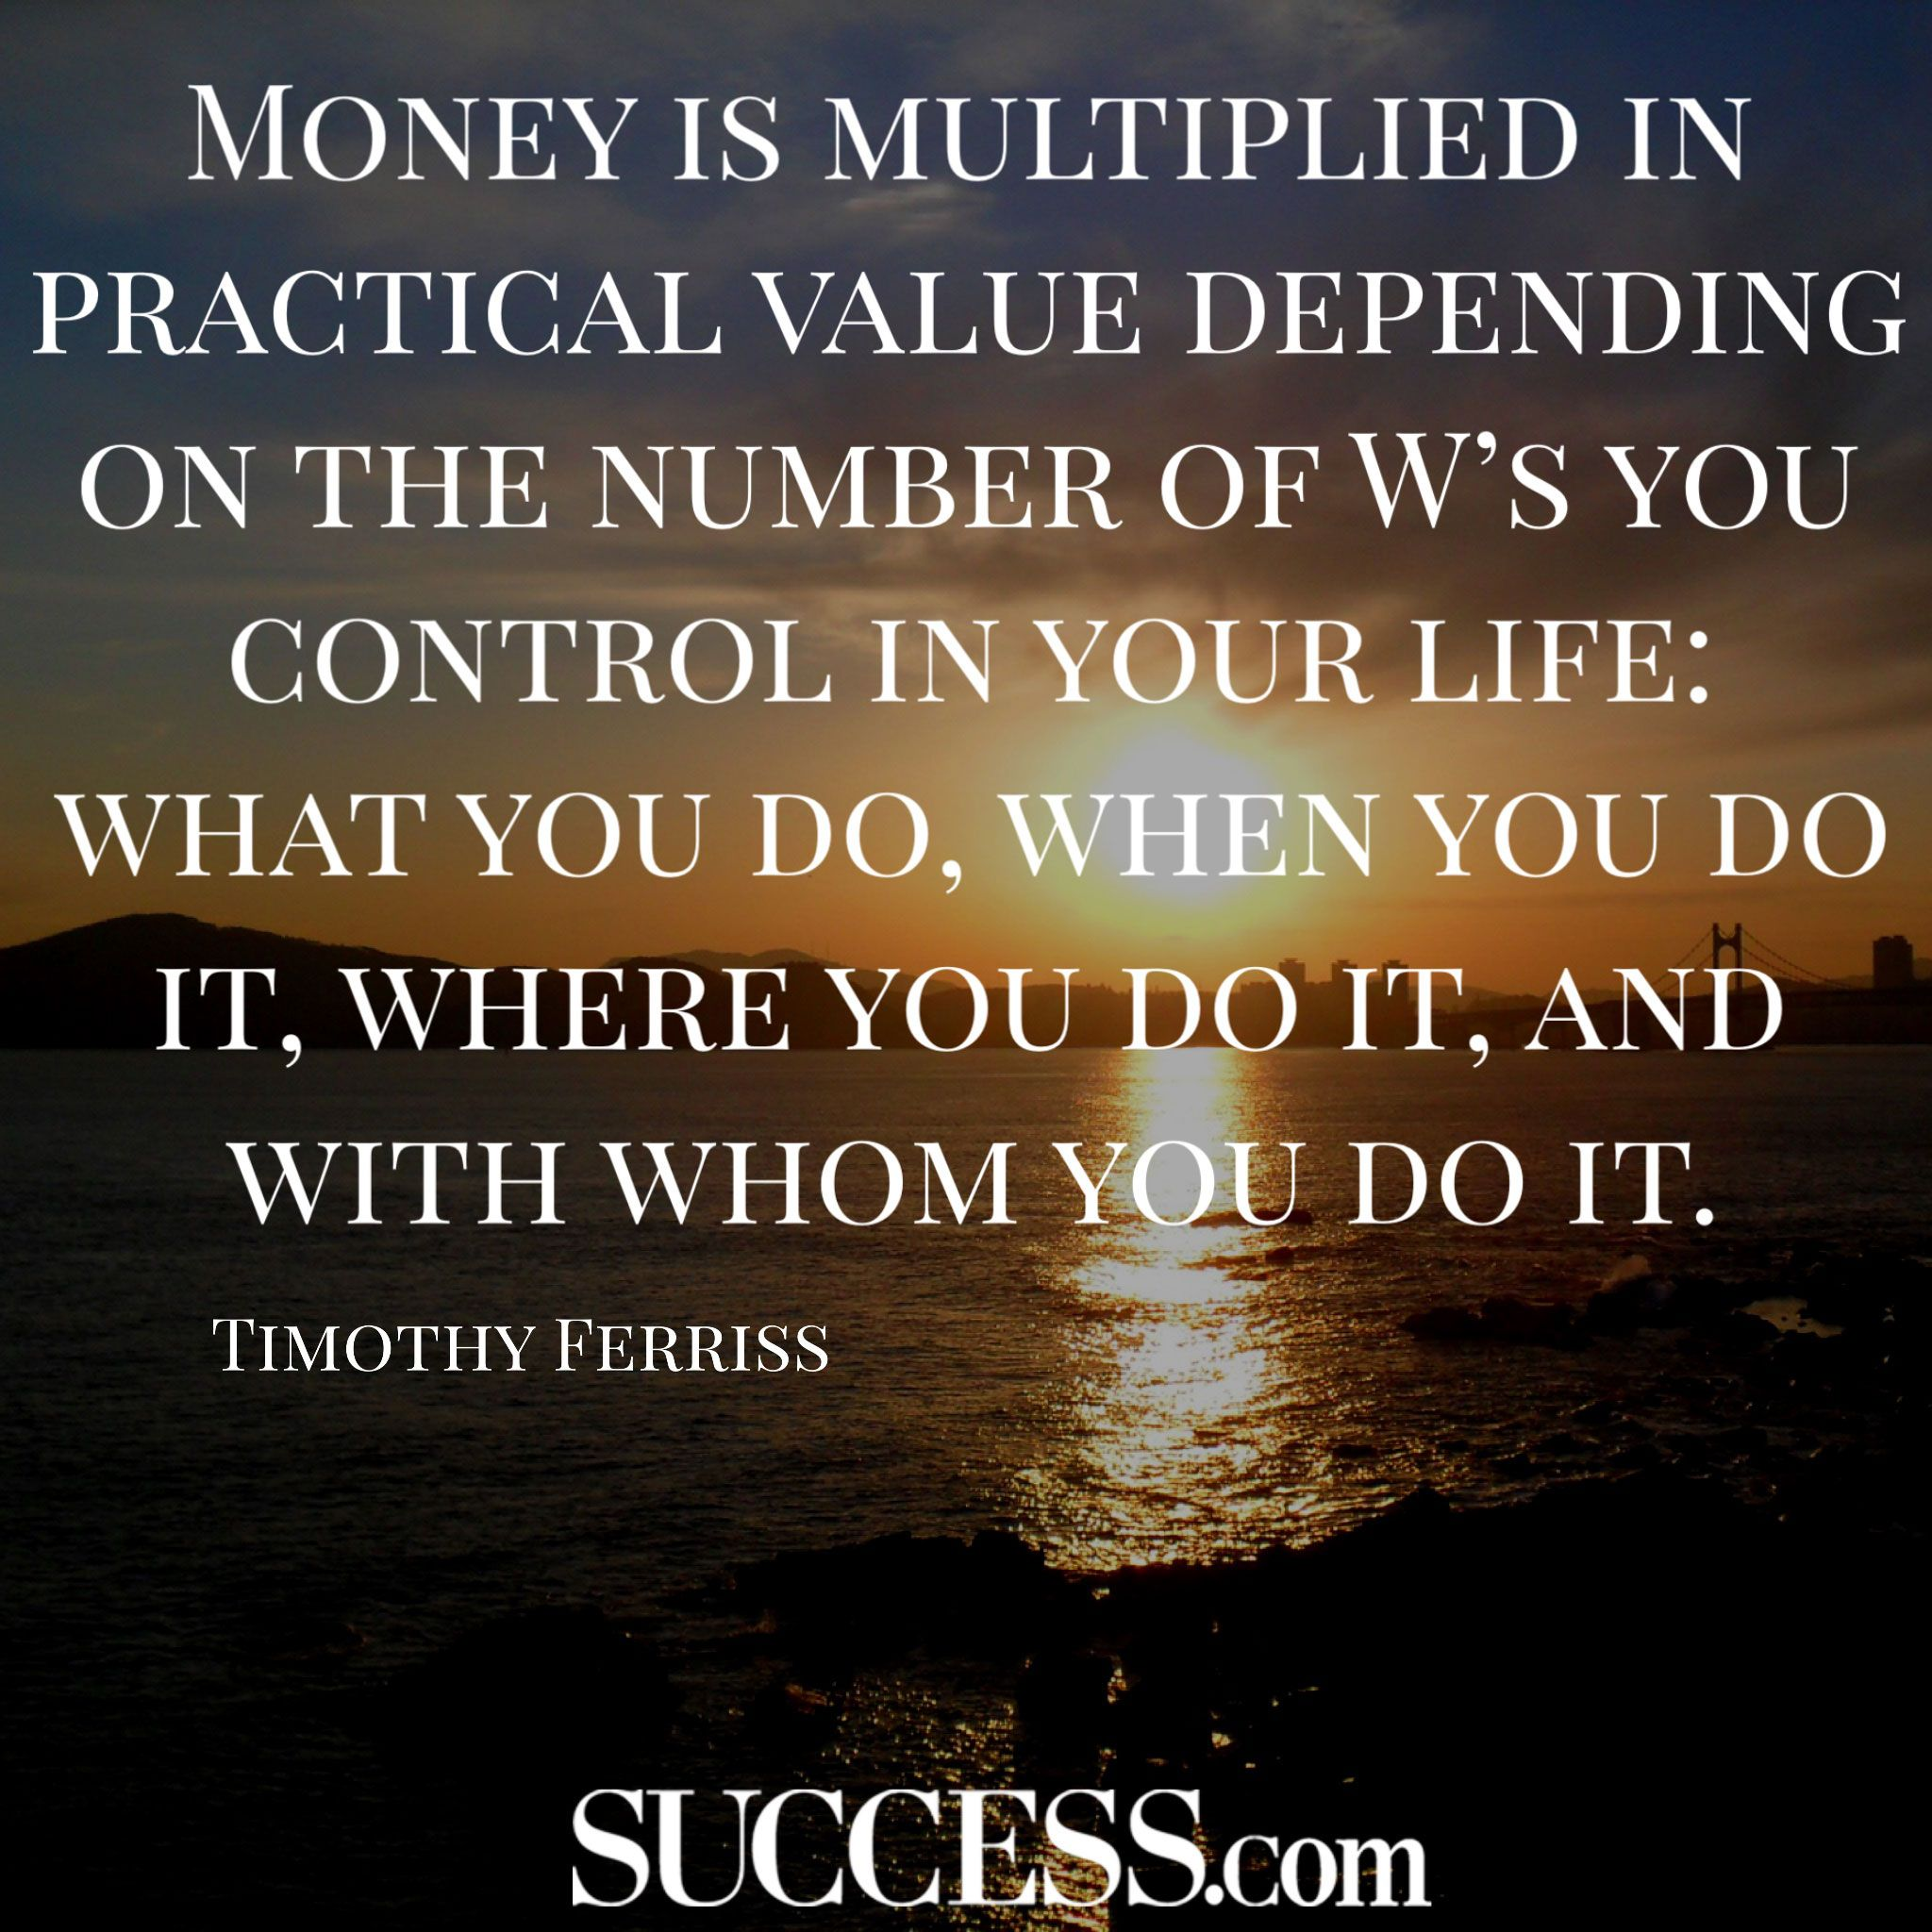 Quotes About Money And Friendship 19 Wise Money Quotes  Financial Wisdom  Pinterest  Money Quotes